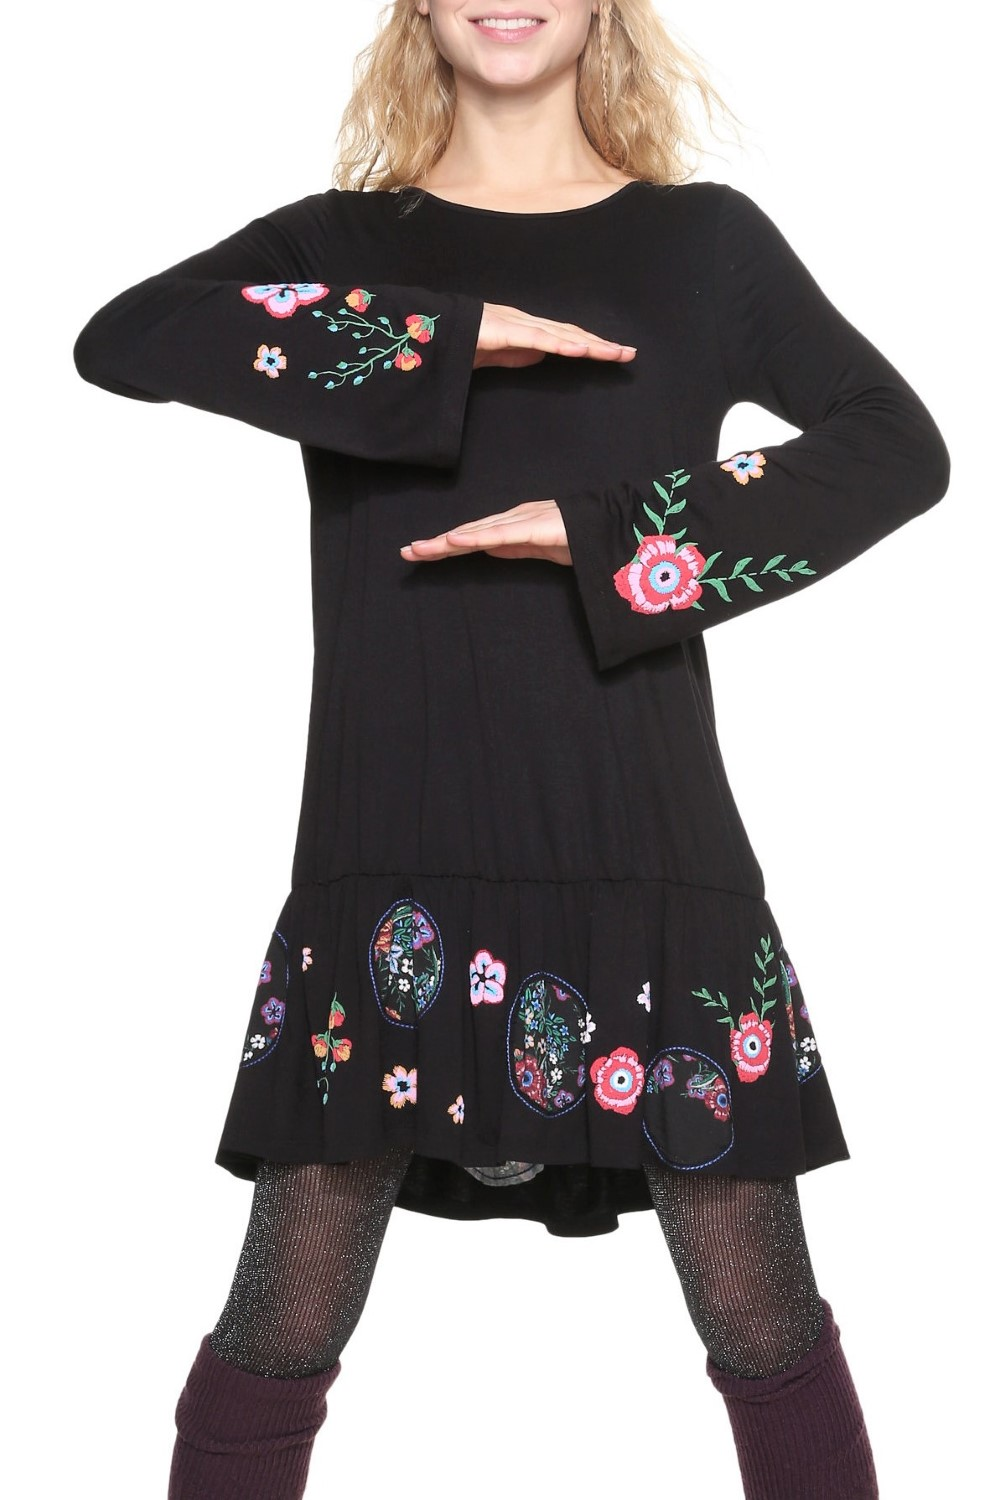 Desigual Black Surat Dress with Embroidery - Women s Dress ... 16b499cc065